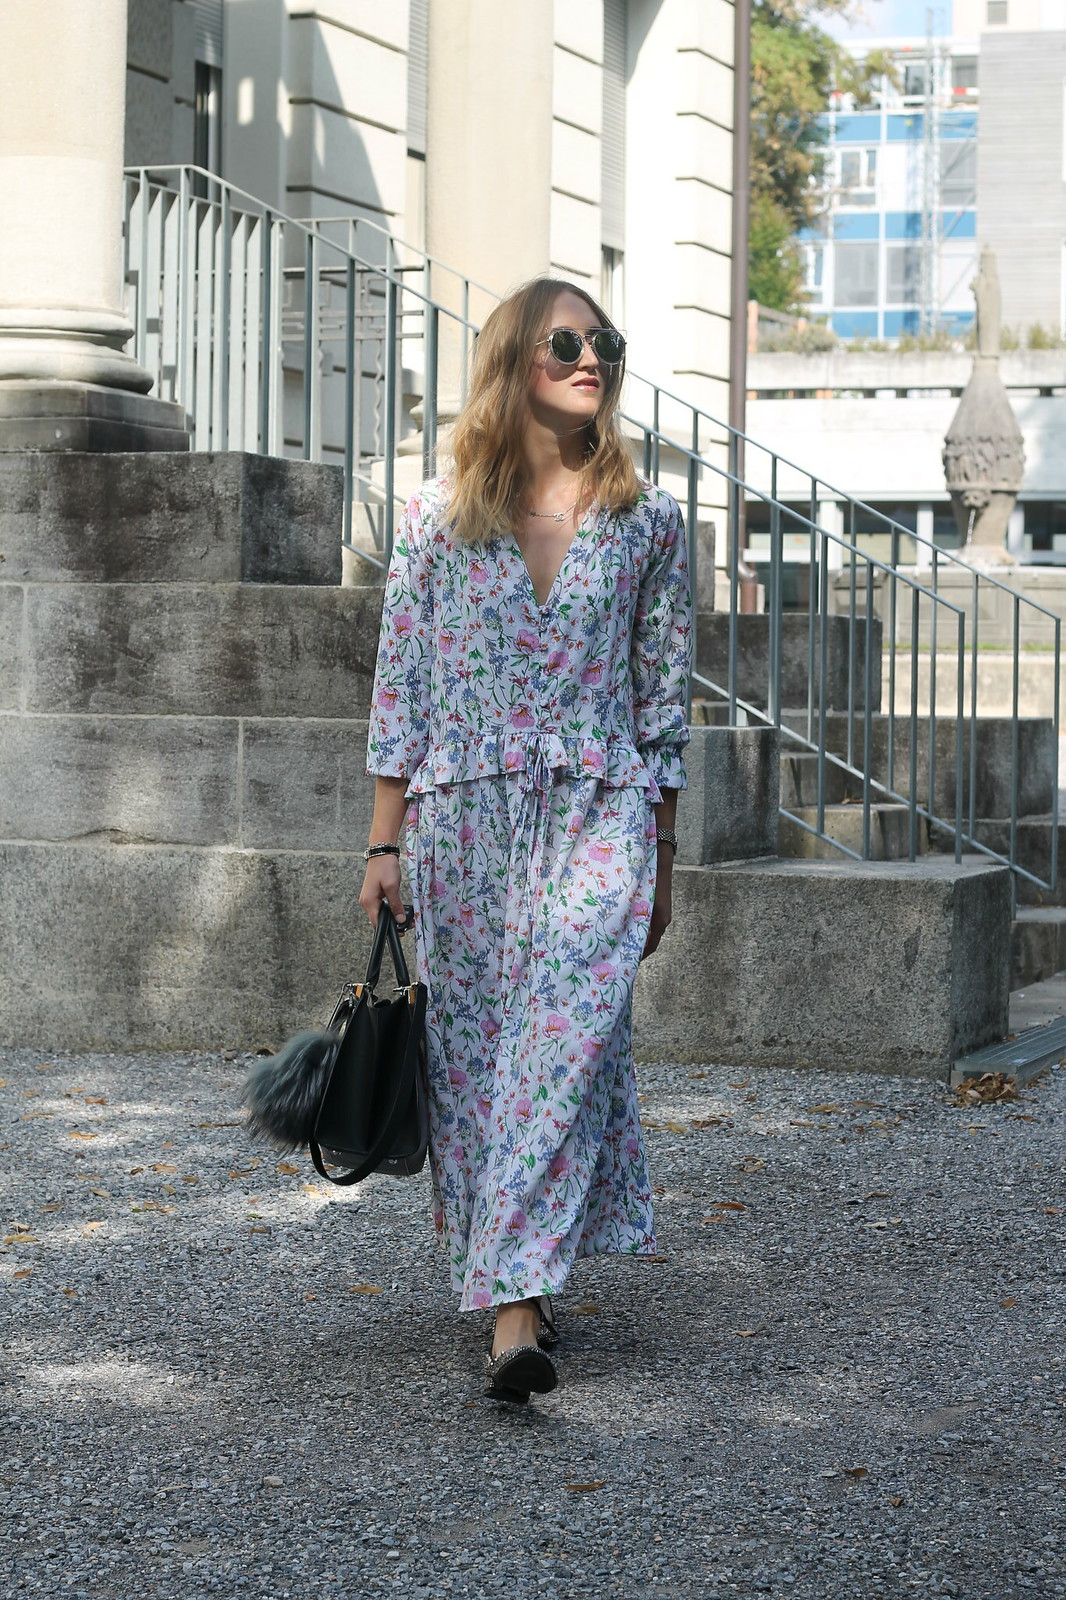 floral-maxidress-whole-outfit-walk-wiebkembg